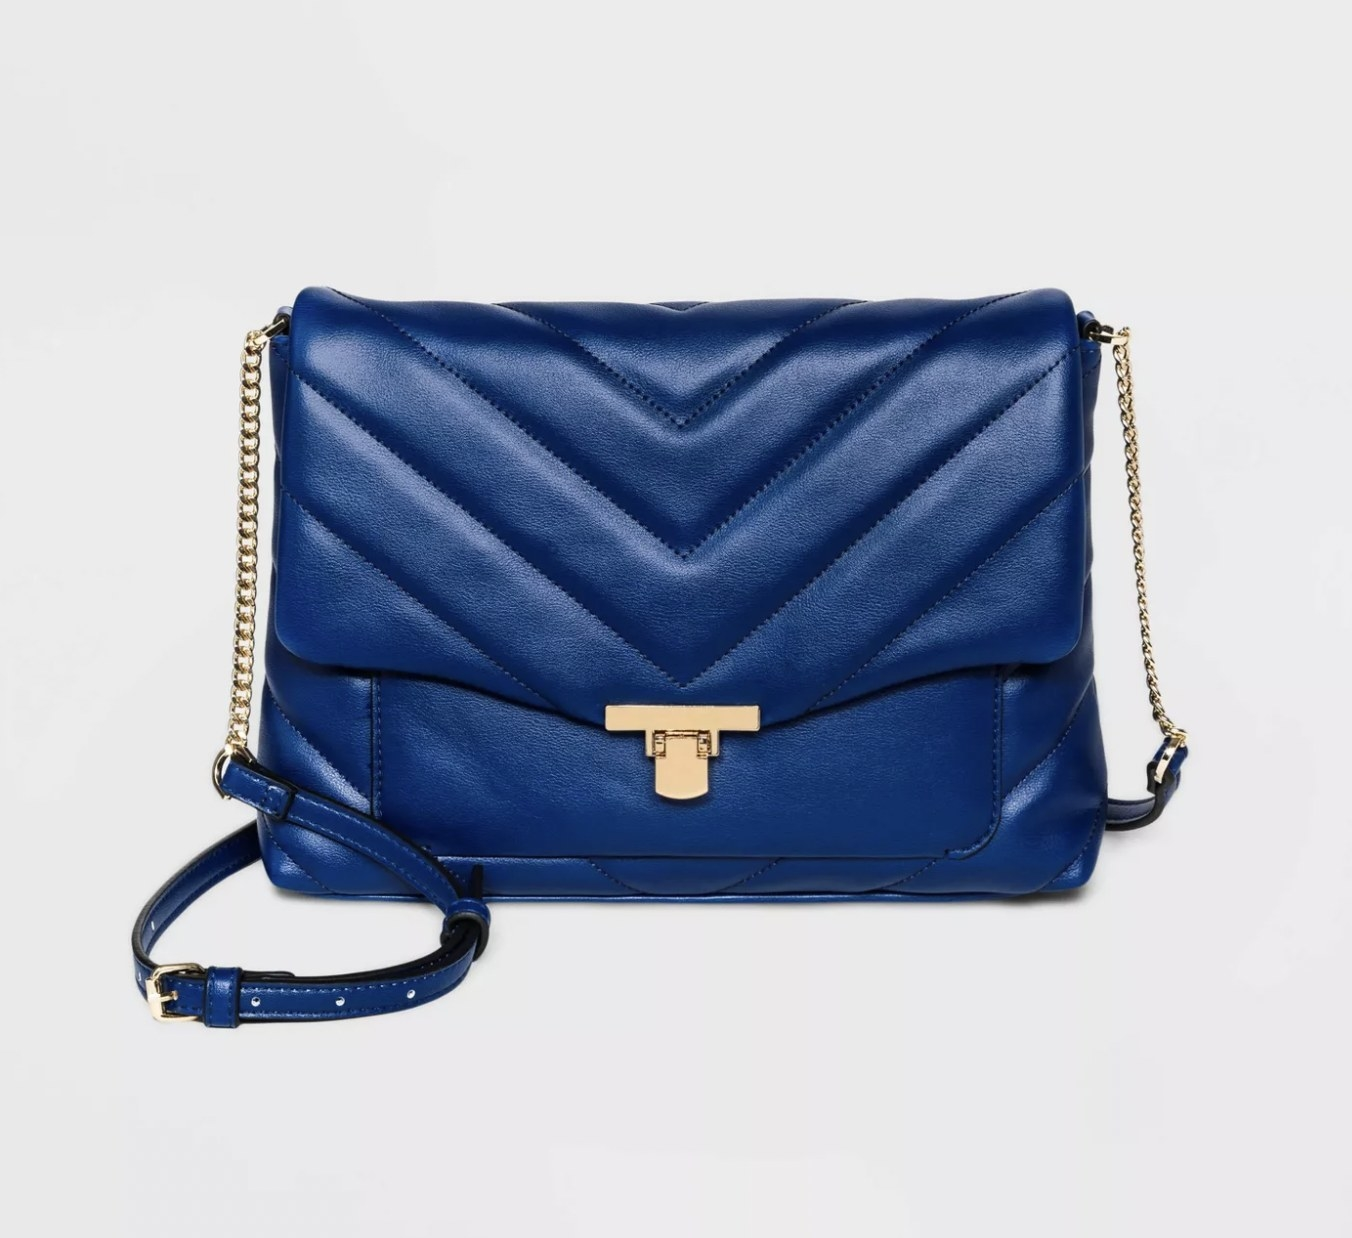 A blue, single compartment bag with a chain carry handle.